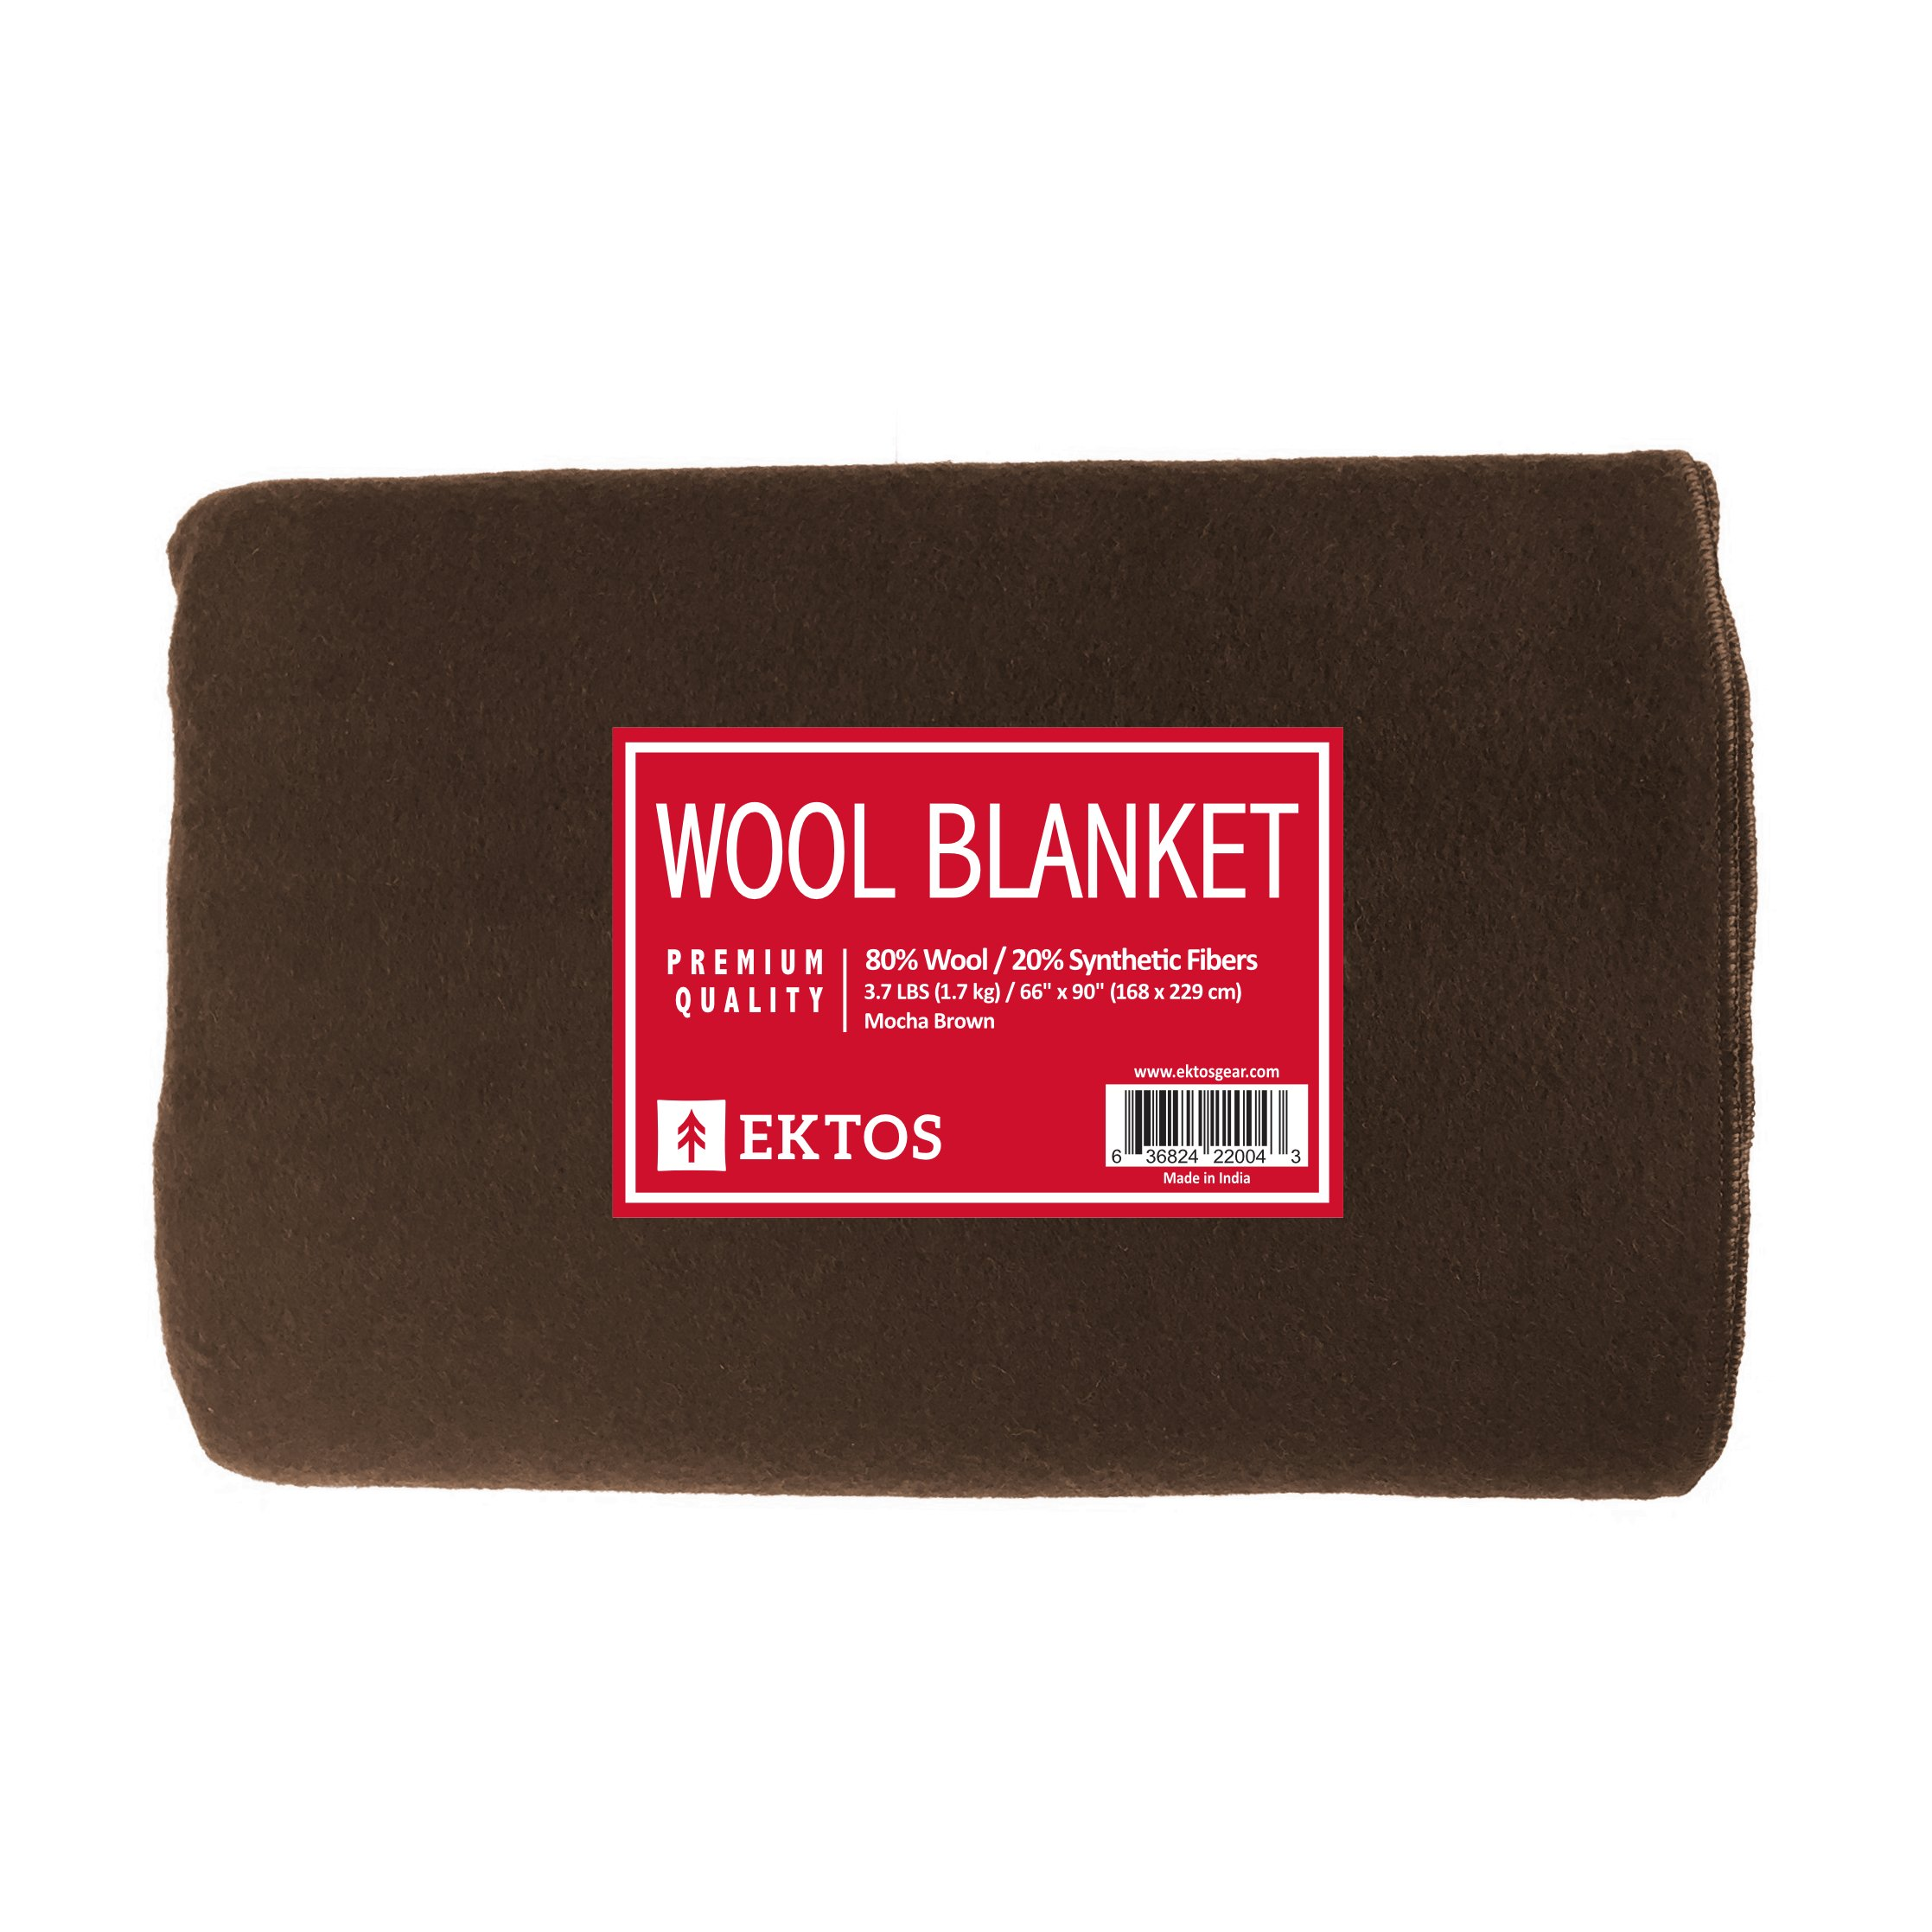 EKTOS 80% Wool Blanket, Brown, Light & Warm 3.7 lbs, Large Washable 66''x90'' Size, Perfect for Outdoor Camping, Survival & Emergency Preparedness Use by EKTOS (Image #2)